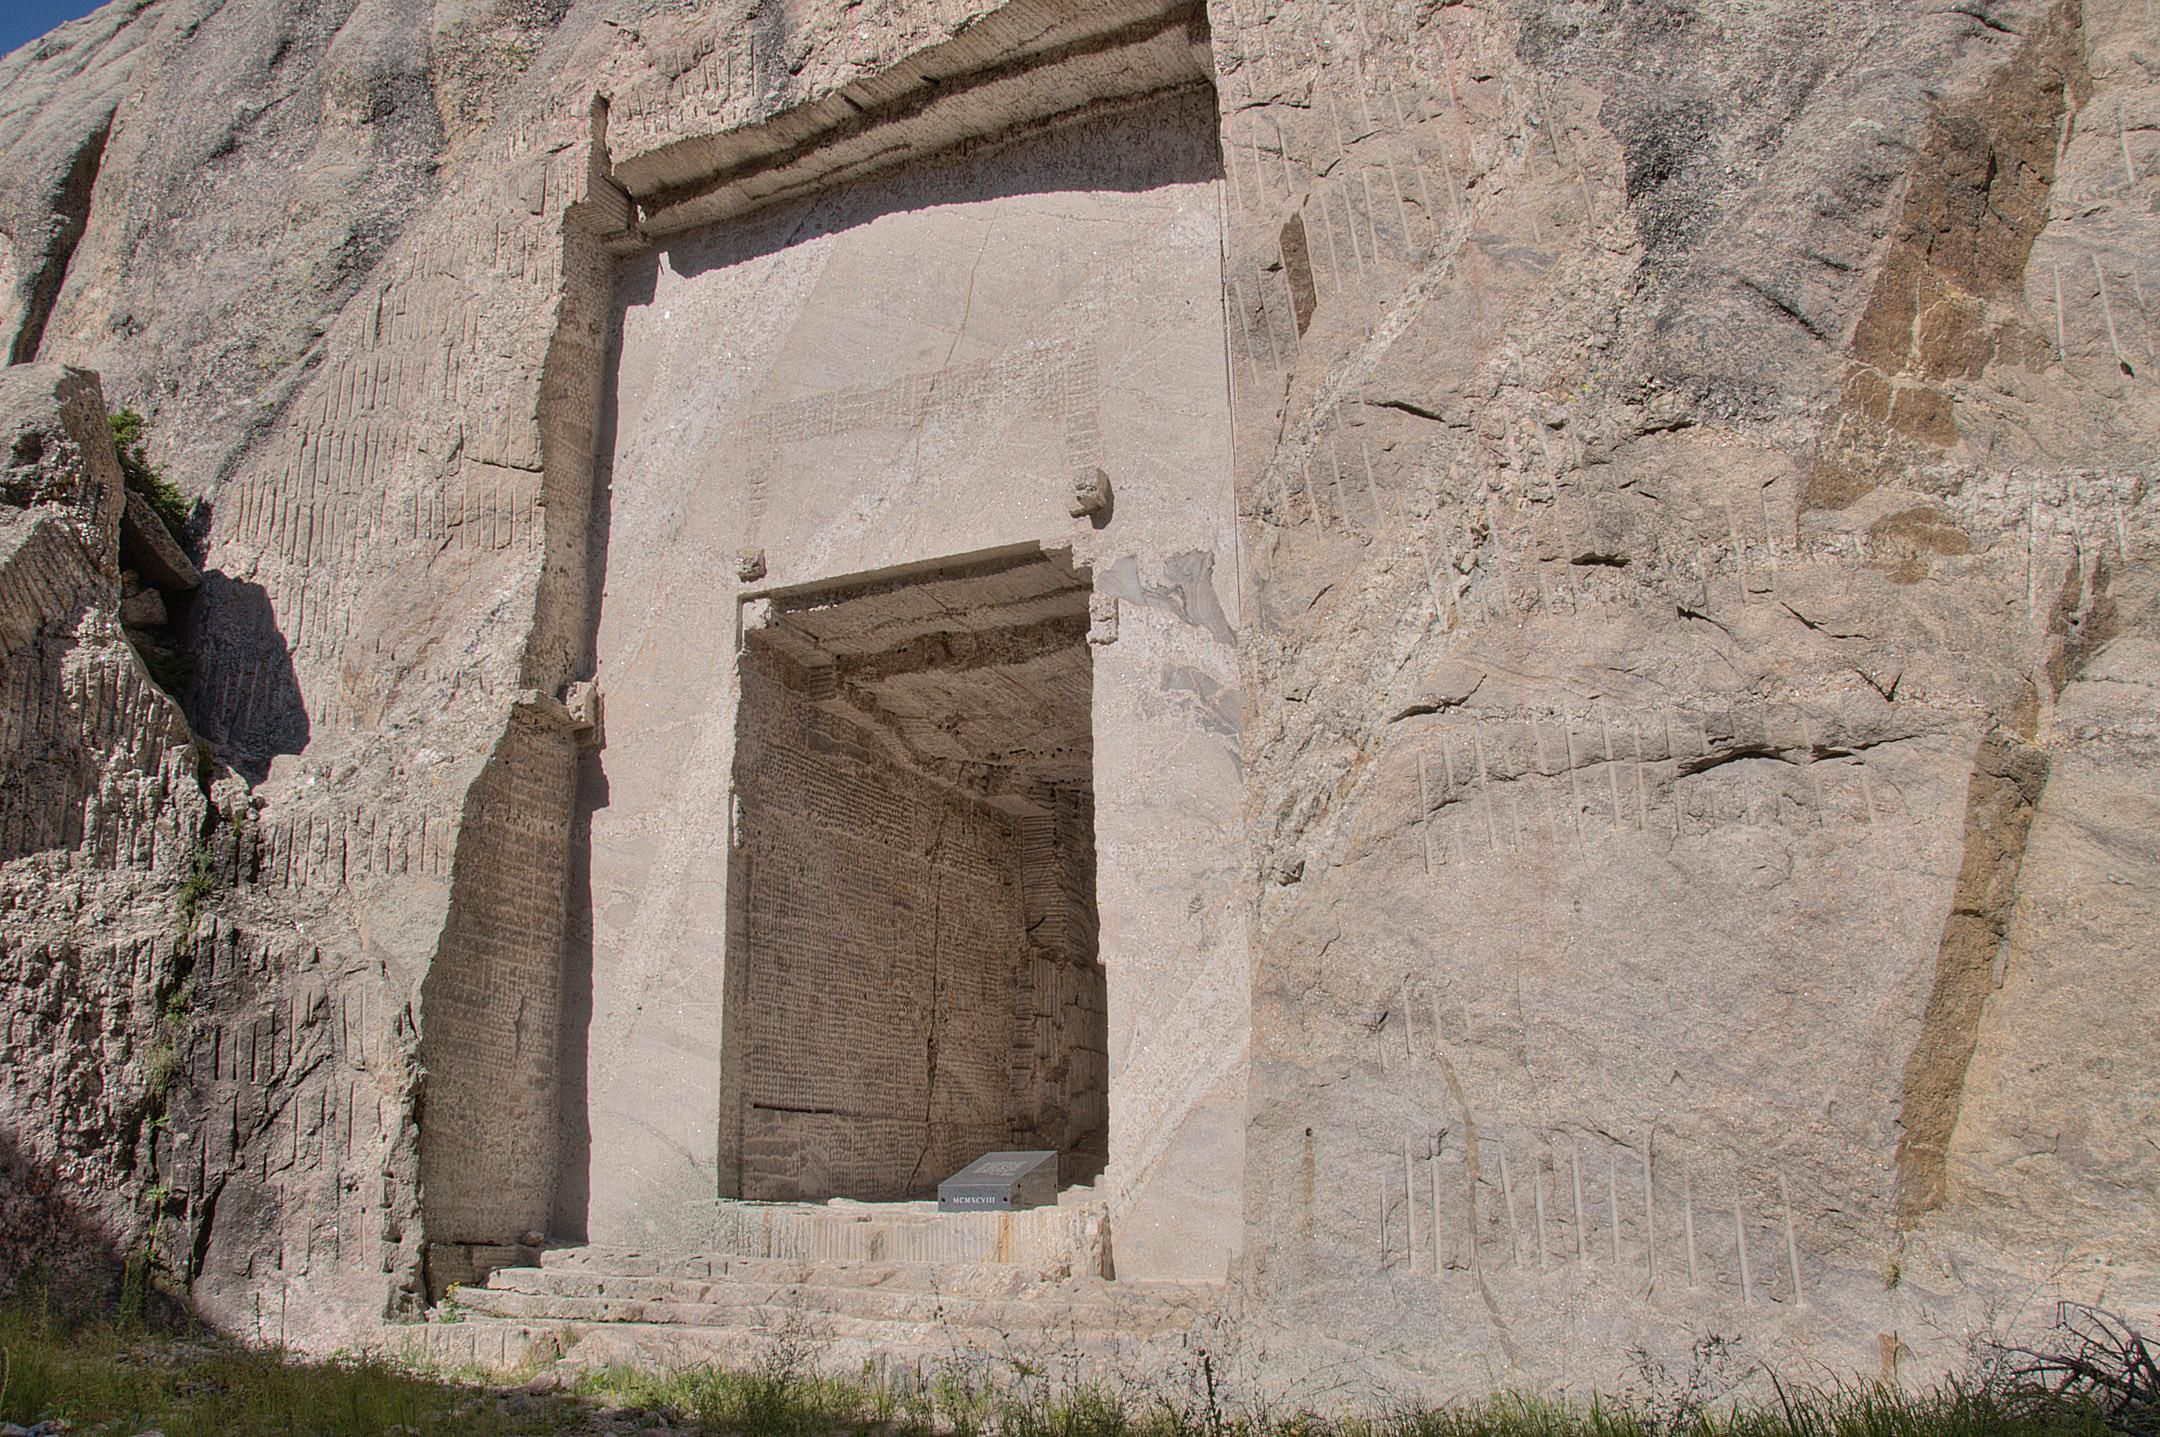 The entrance to the Hall of Records at Mount Rushmore.